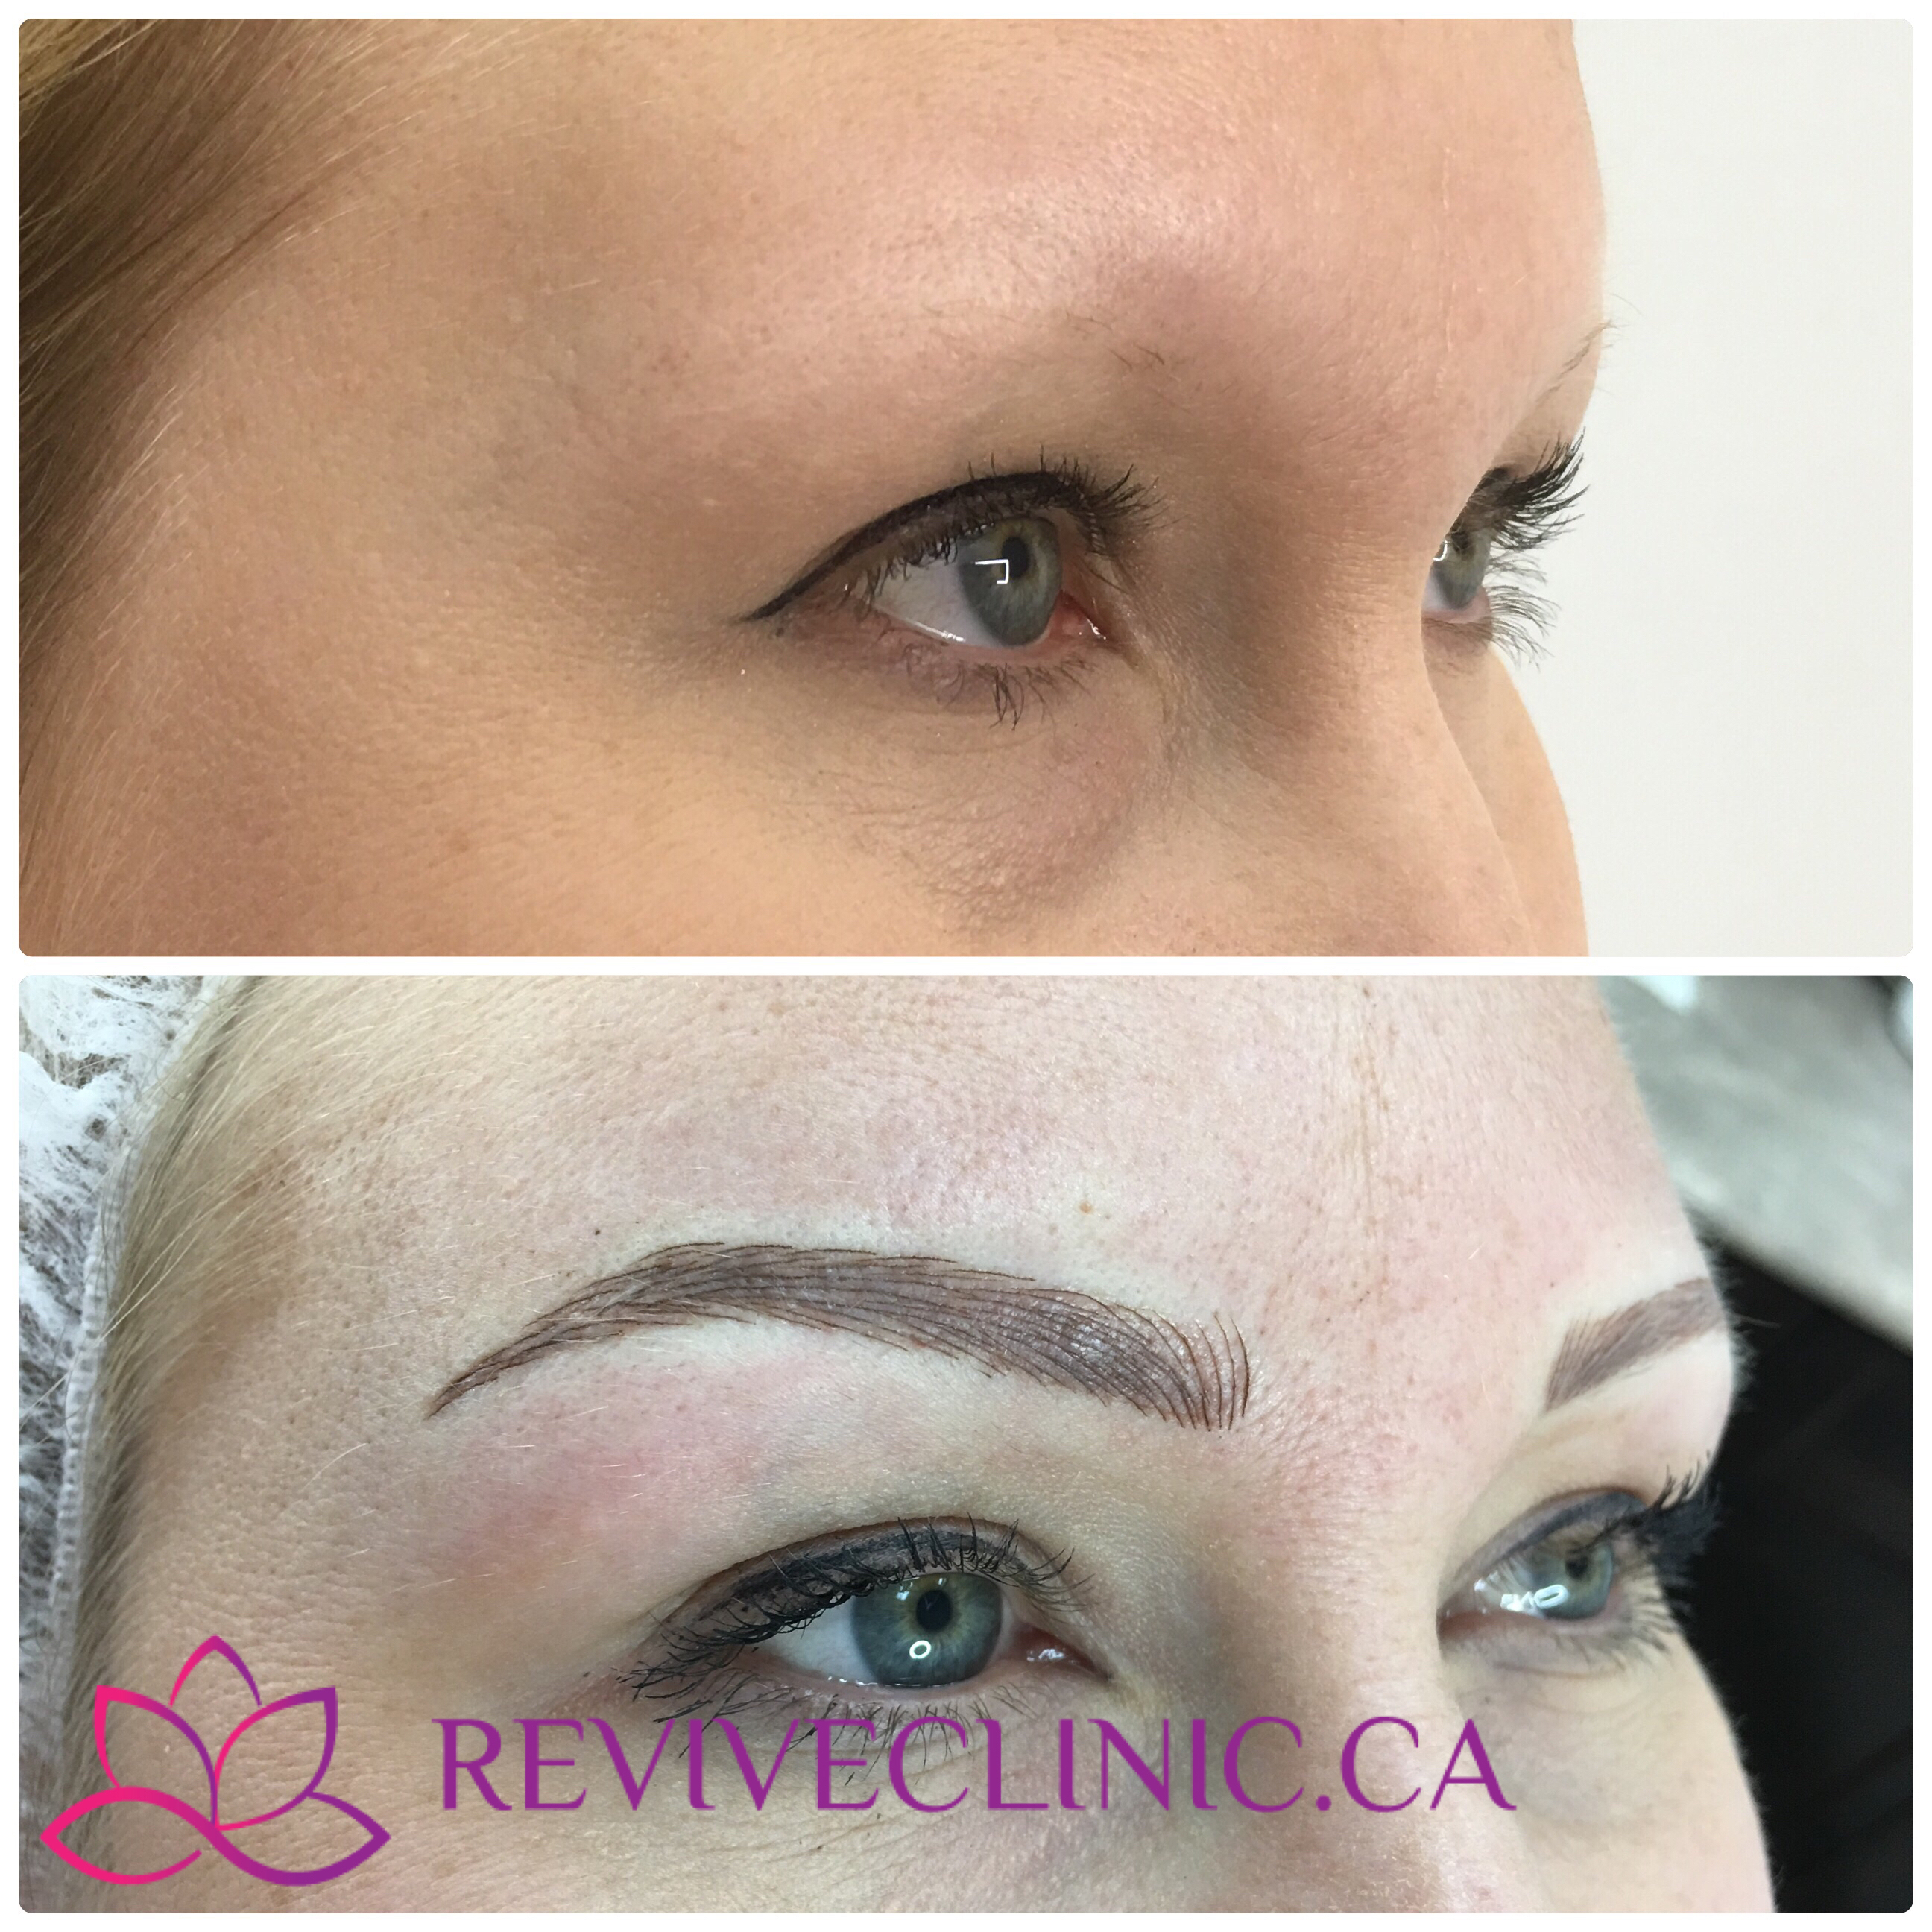 HAIRSTROKE BROWS